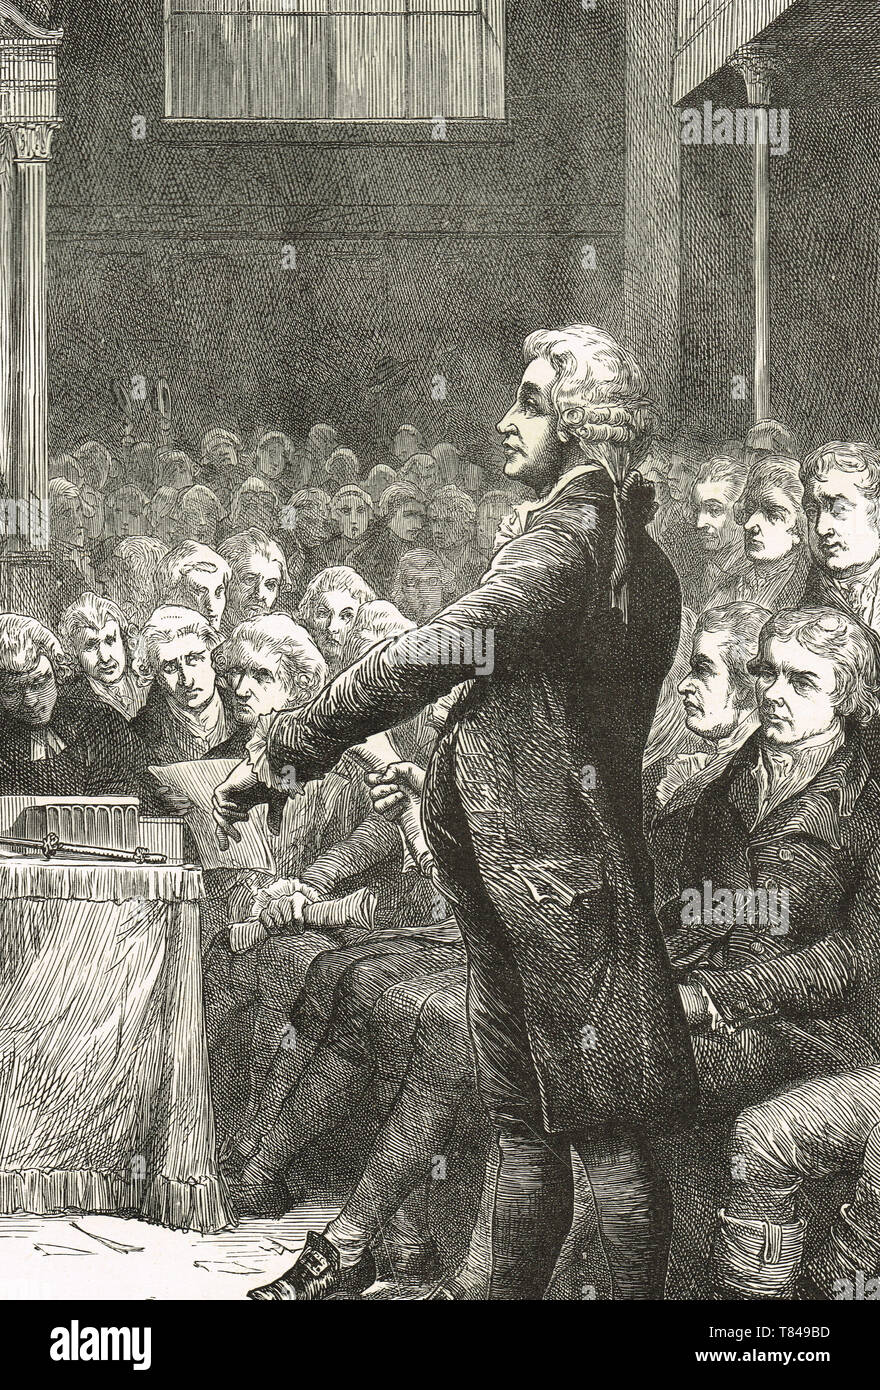 Edmund Burke speech in support of William Wilberforce motion for the abolition of slavery, 1789 - Stock Image